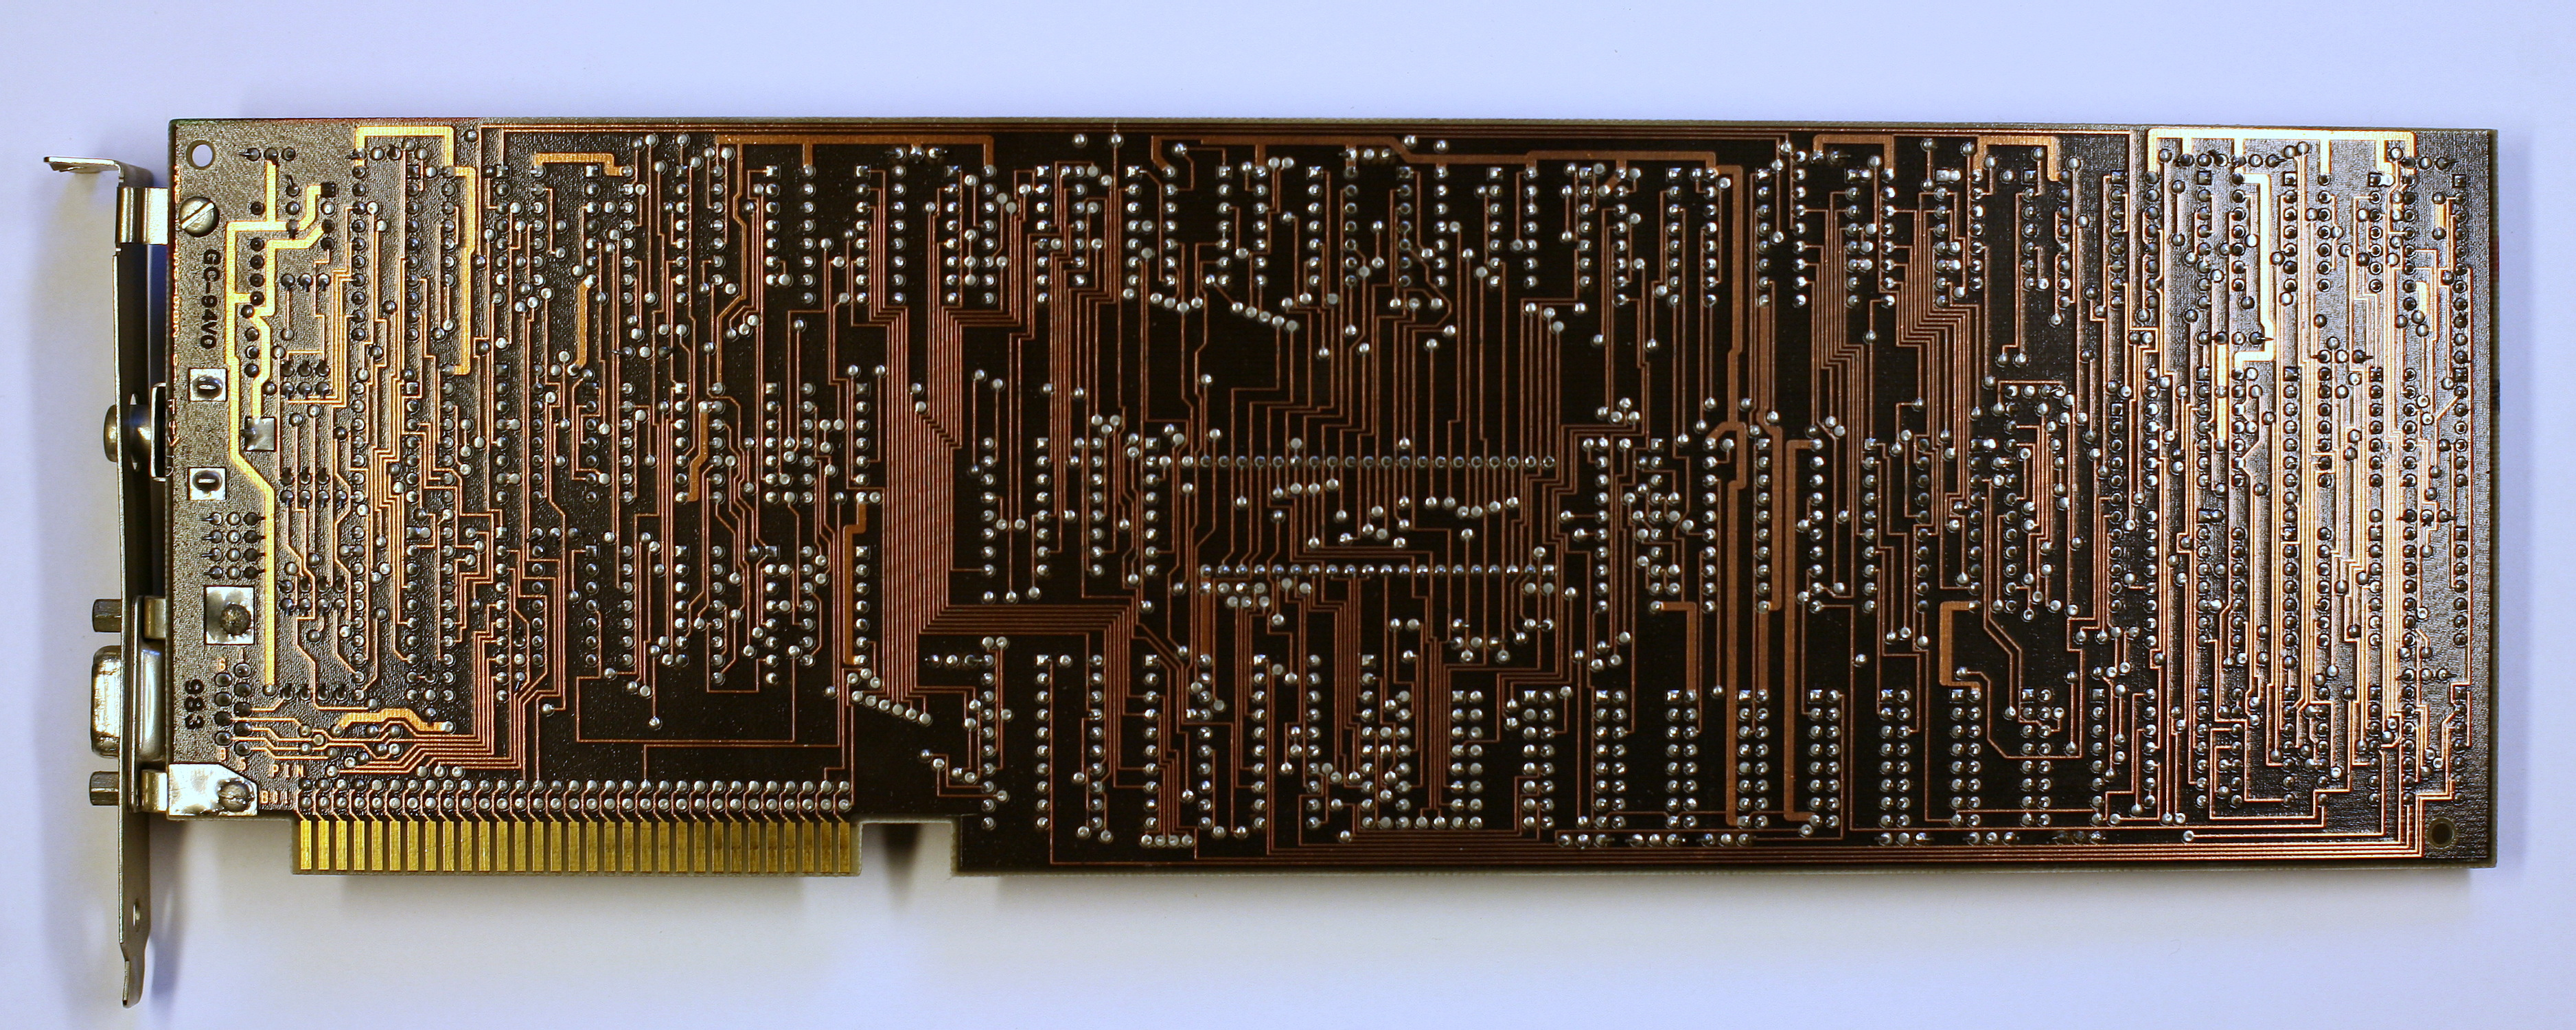 Fileibm Pc Xt Cga Pcb Solder Side Wikimedia Commons For Circuit Boards